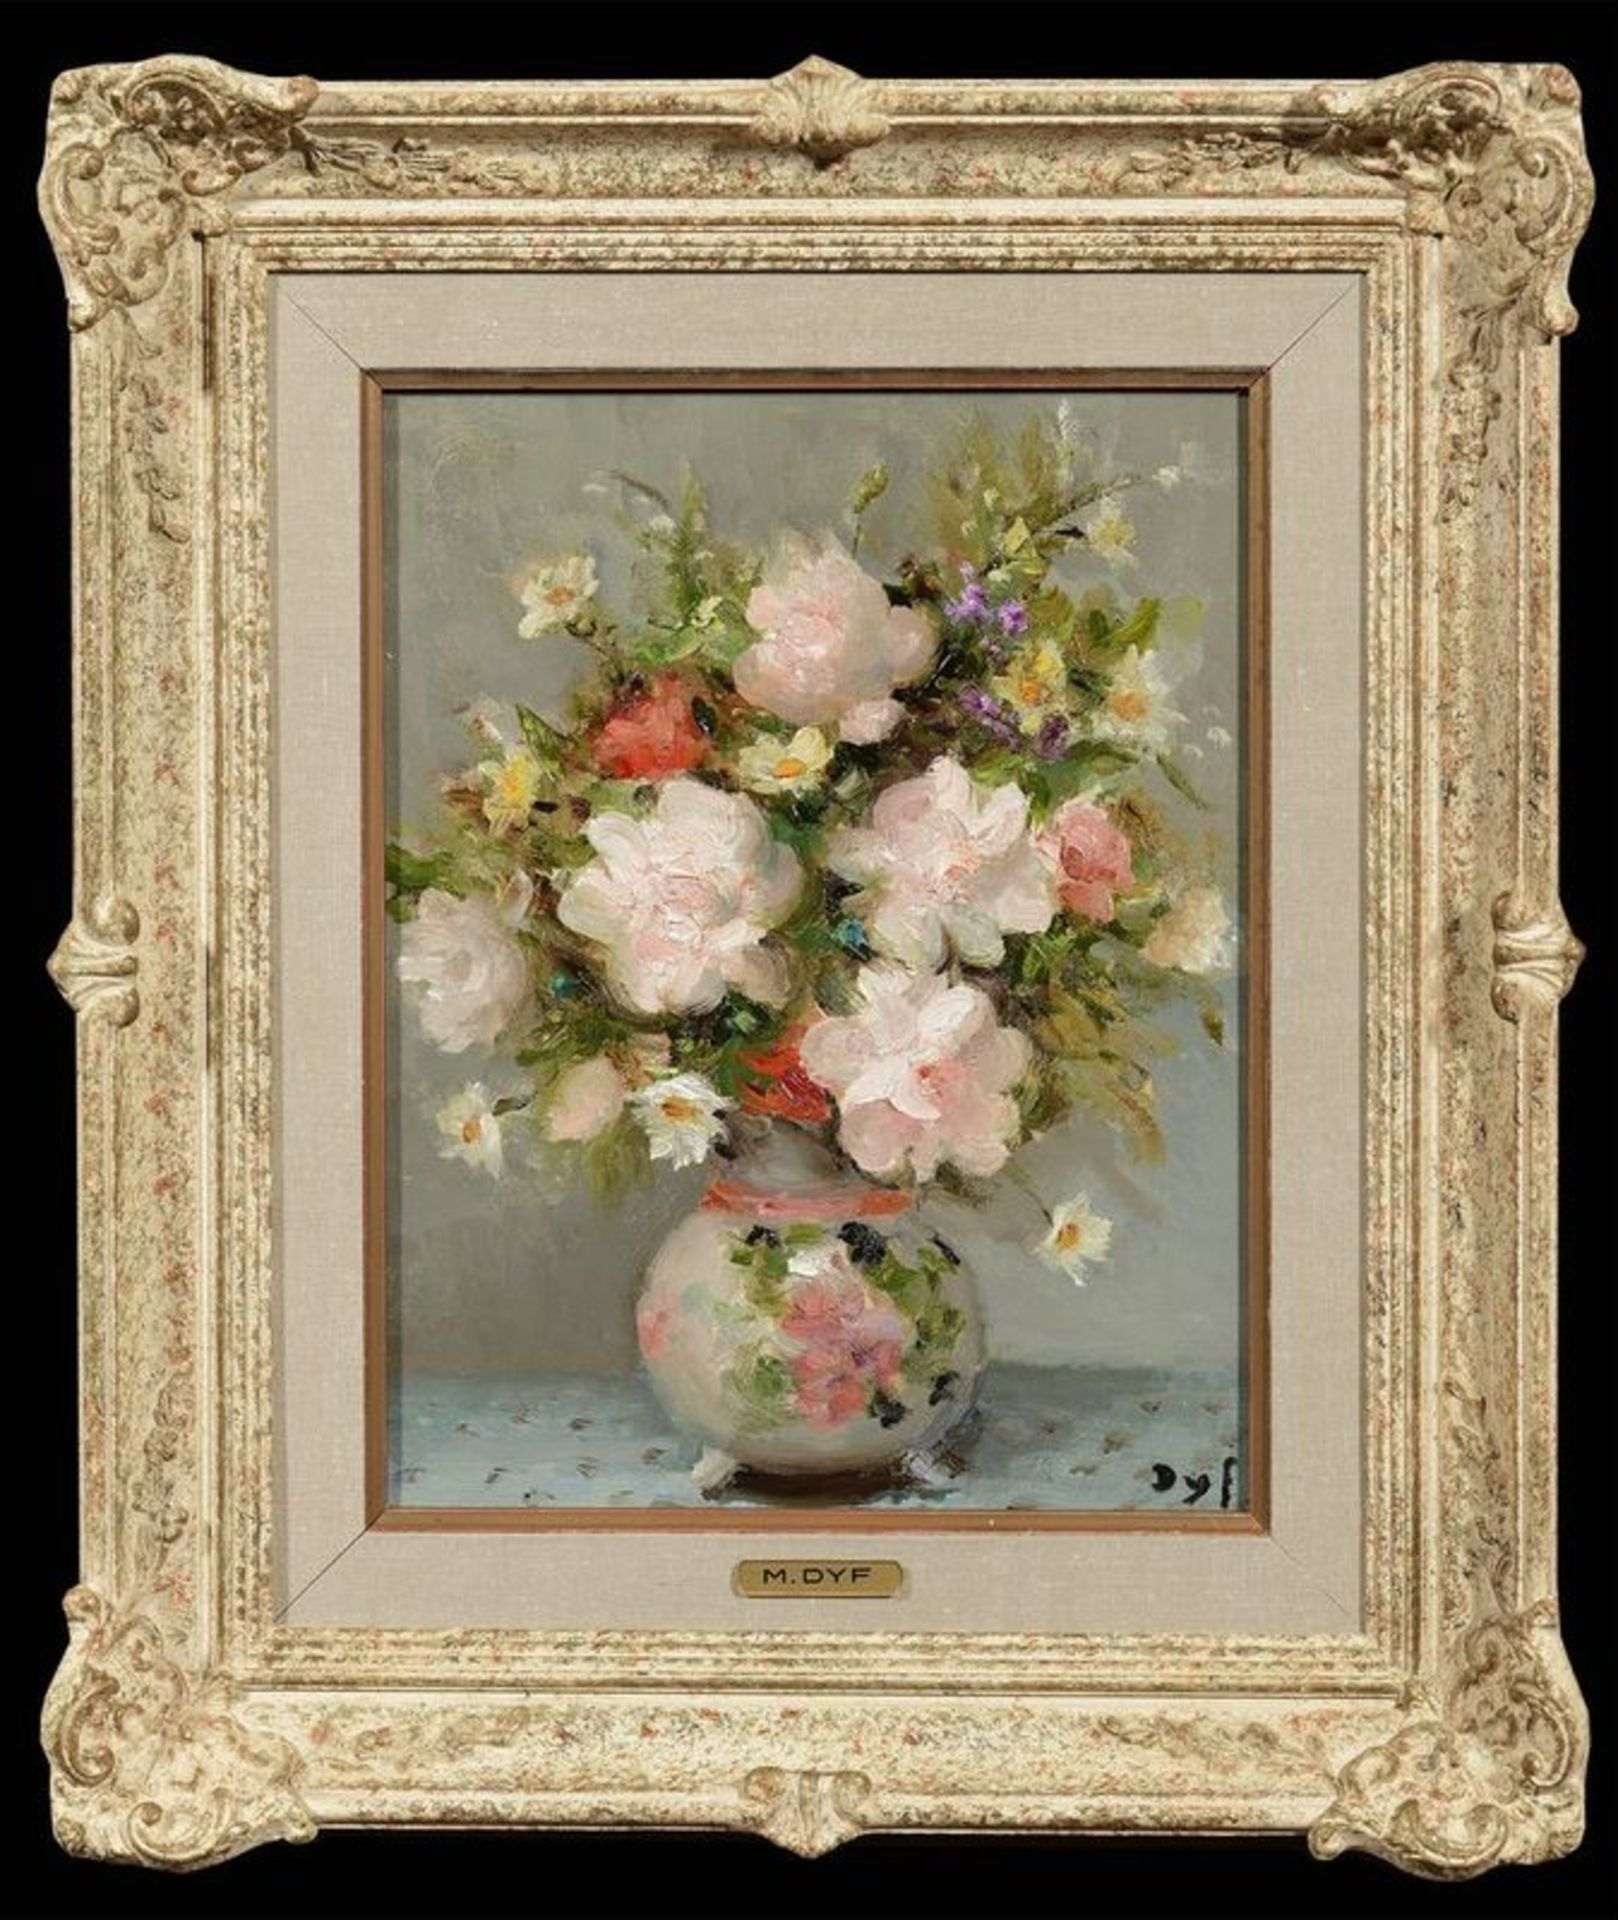 Los 553 - MARCEL DYF (French, 1899-1985) Still life with flowers - Signed lower right Oil [...]